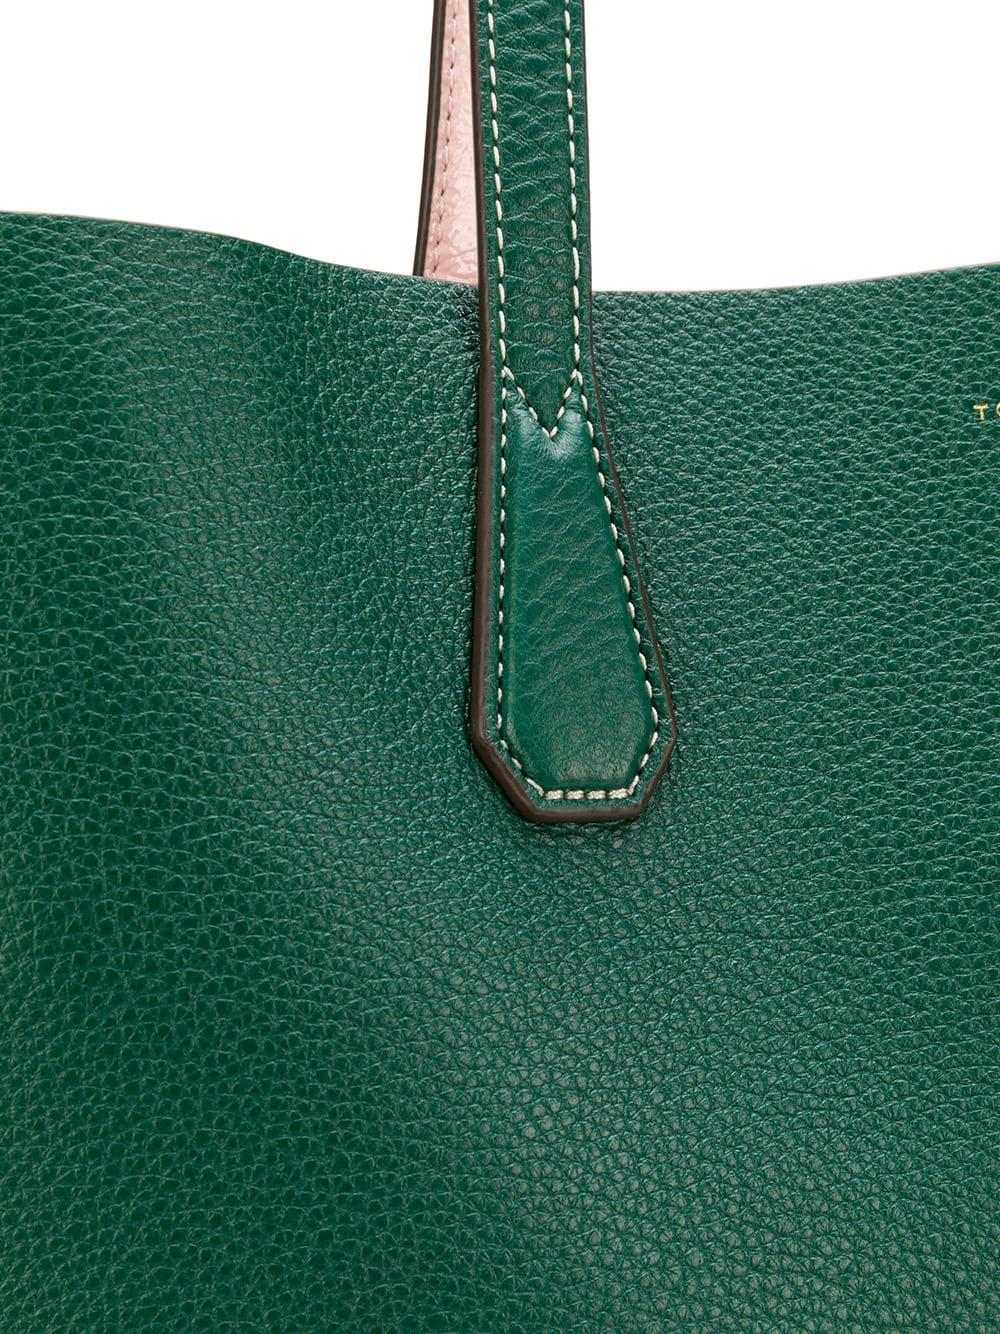 cfe51840cf1a Lyst - Tory Burch Perry Reversible Tote Bag in Green